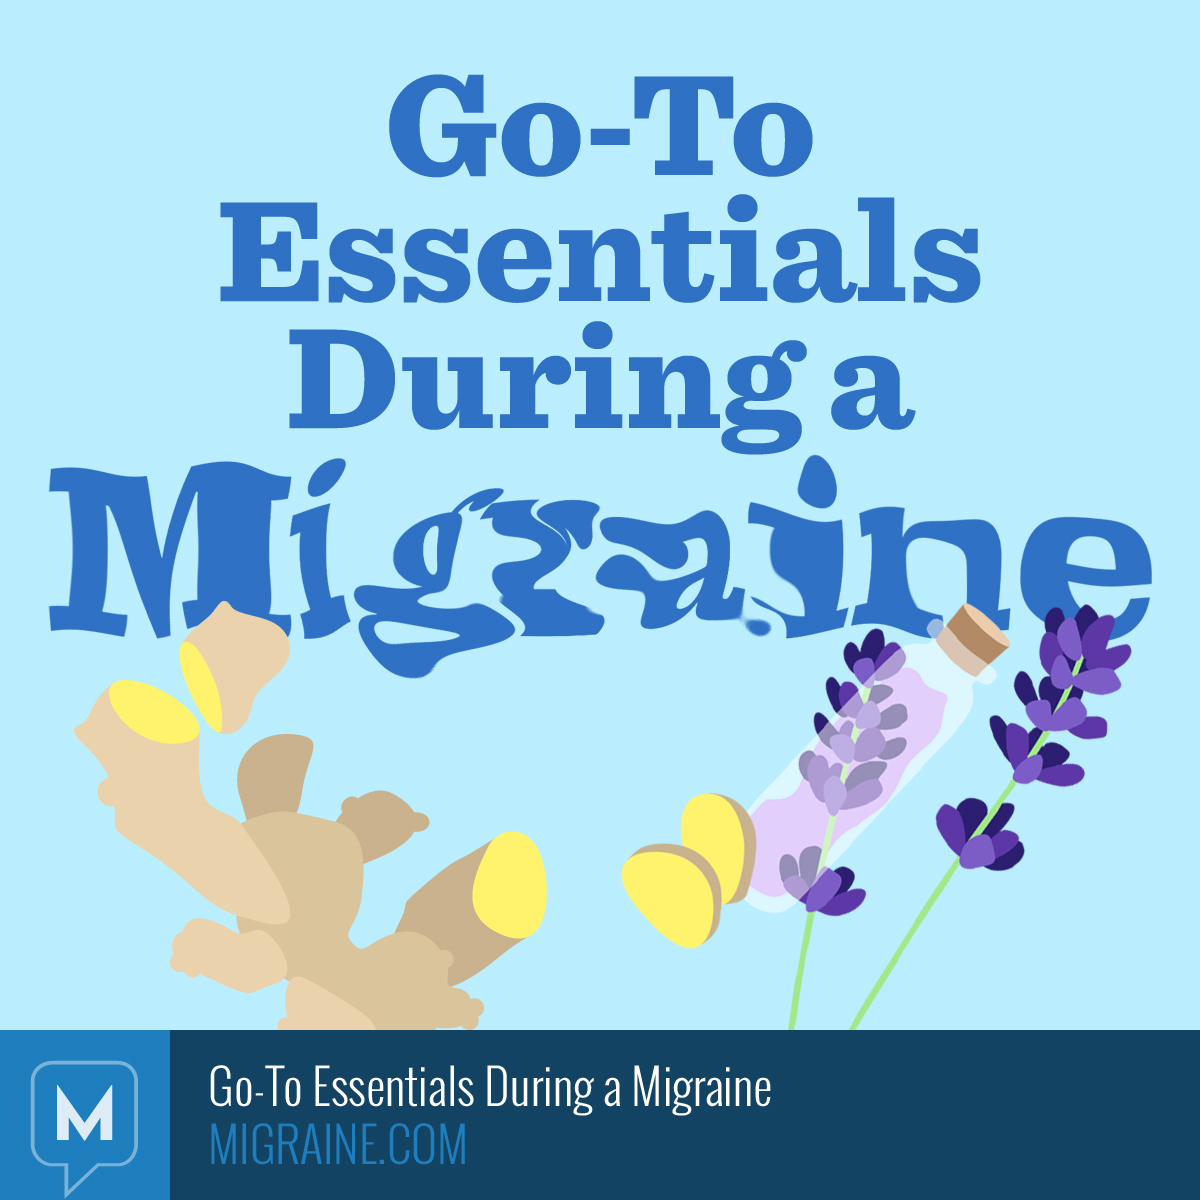 Go-To Essentials During a Migraine